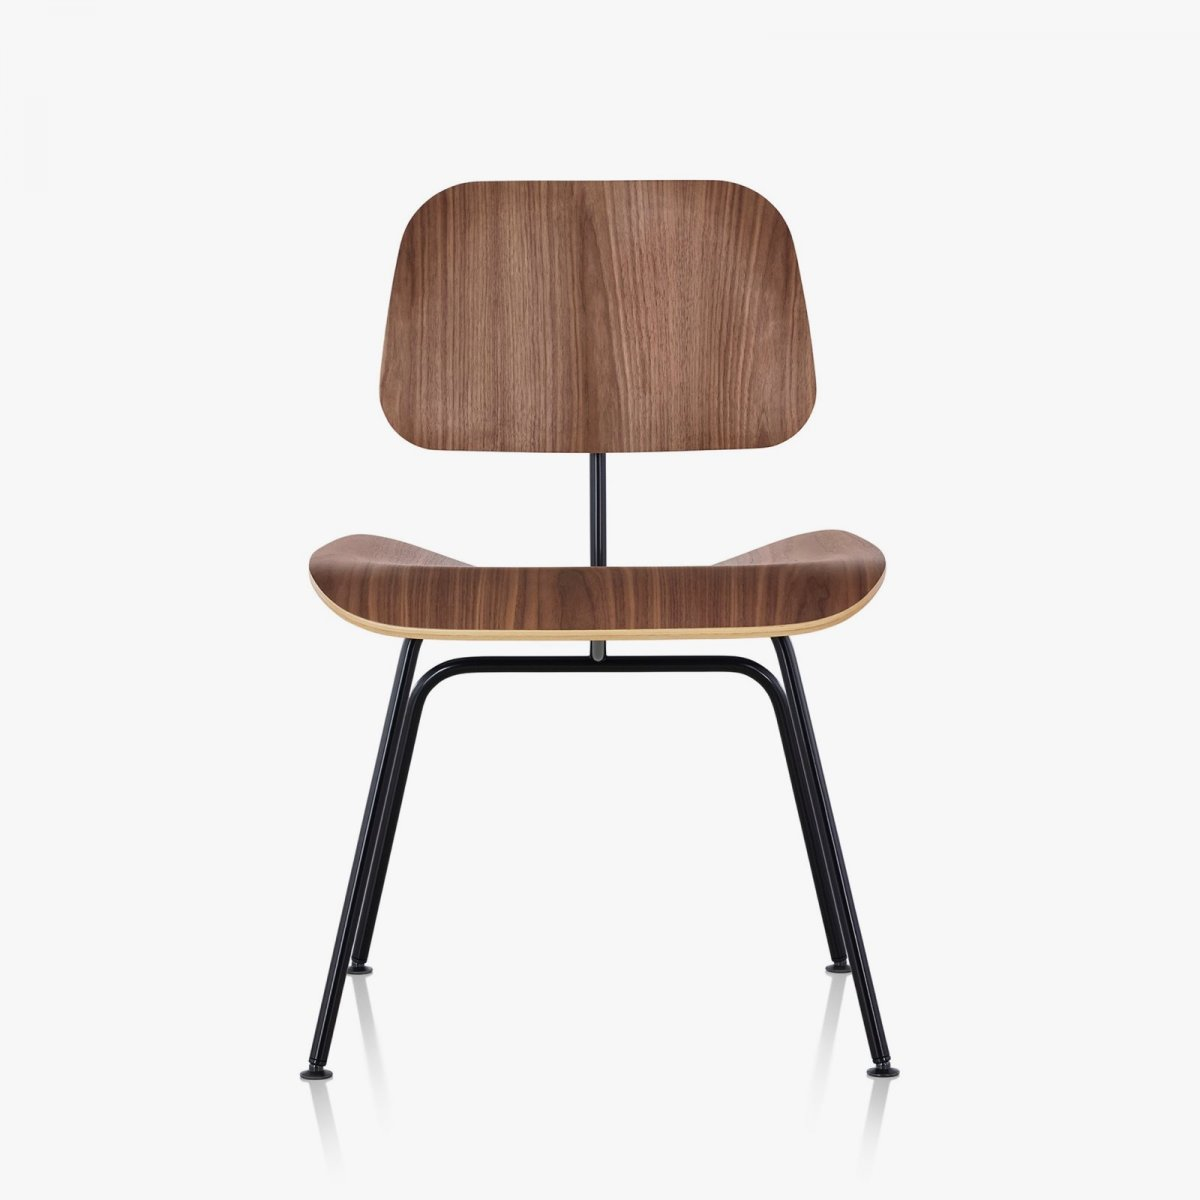 Eames Molded Plywood Dining Chair with Metal Base, walnut seat and back, black base, front view.